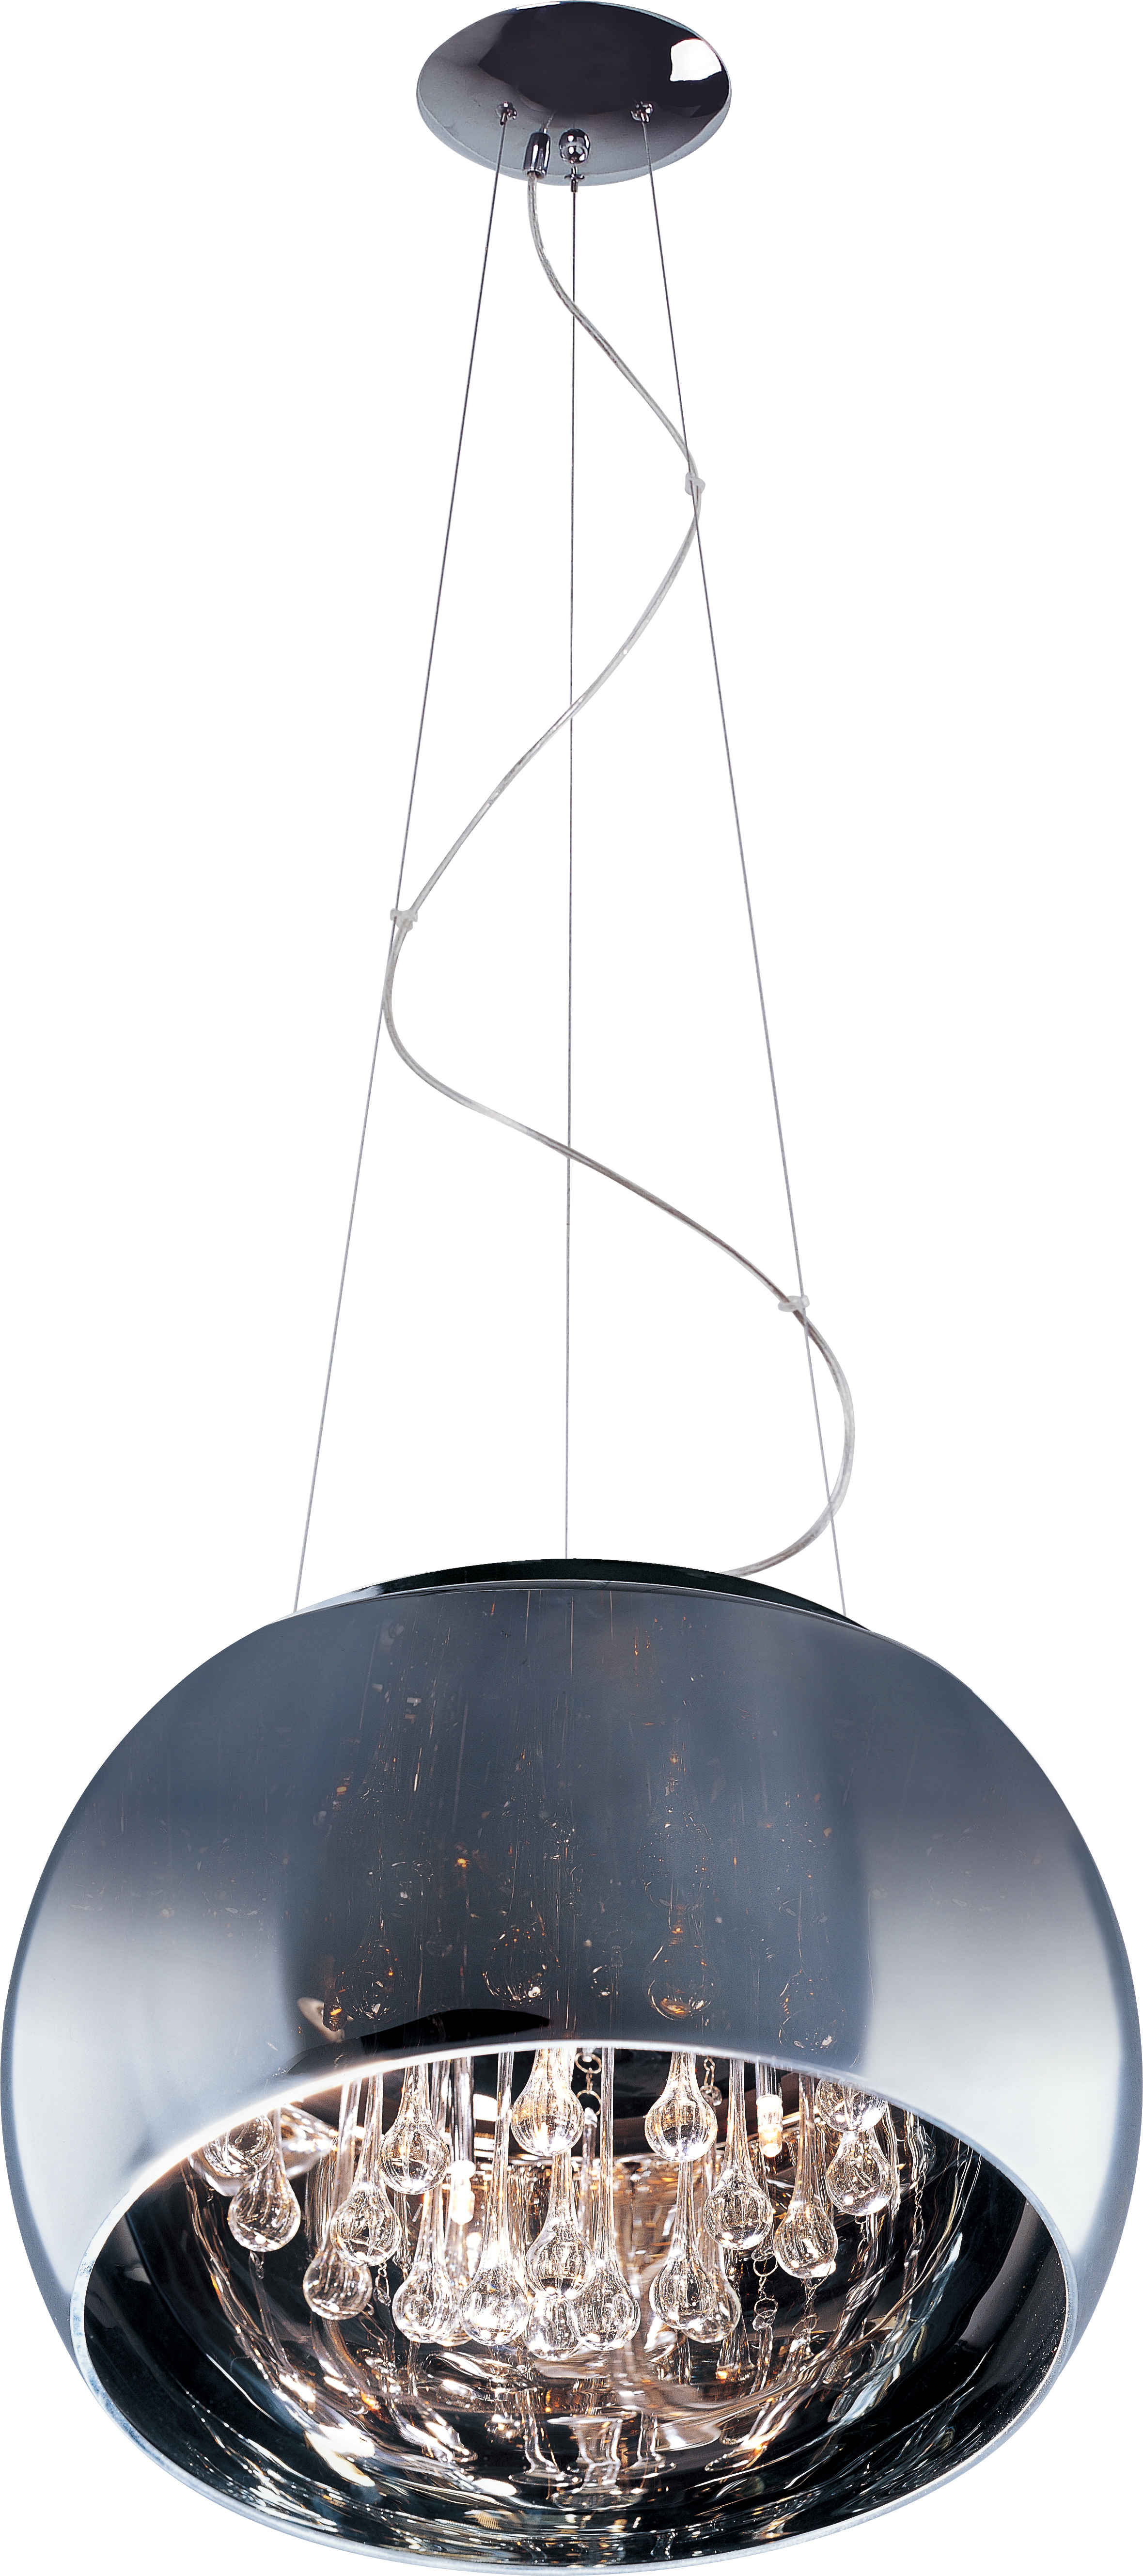 sense 6 light pendant single pendant maxim lighting sense · sense 6 light pendant